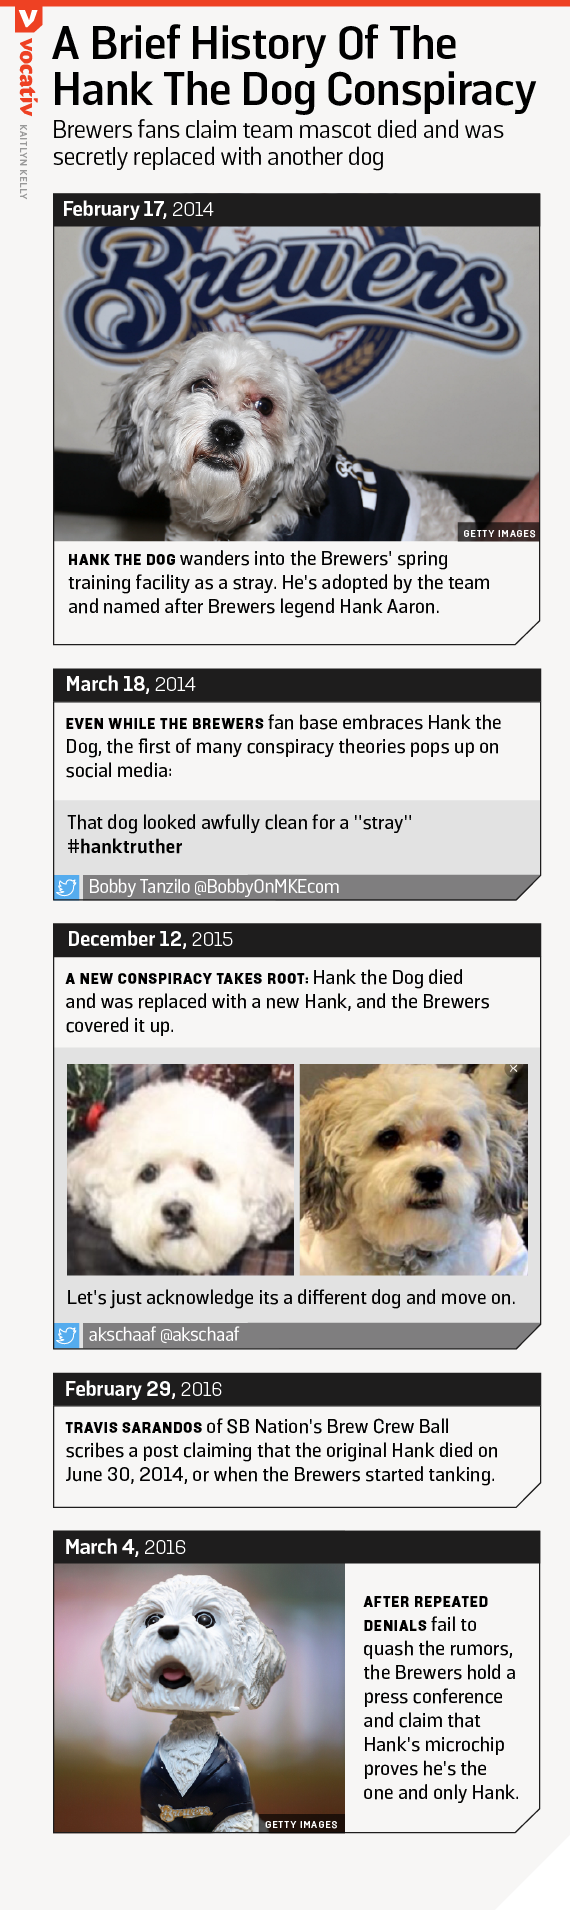 Brewers fans claim team mascot died and was secretly replaced with another dog